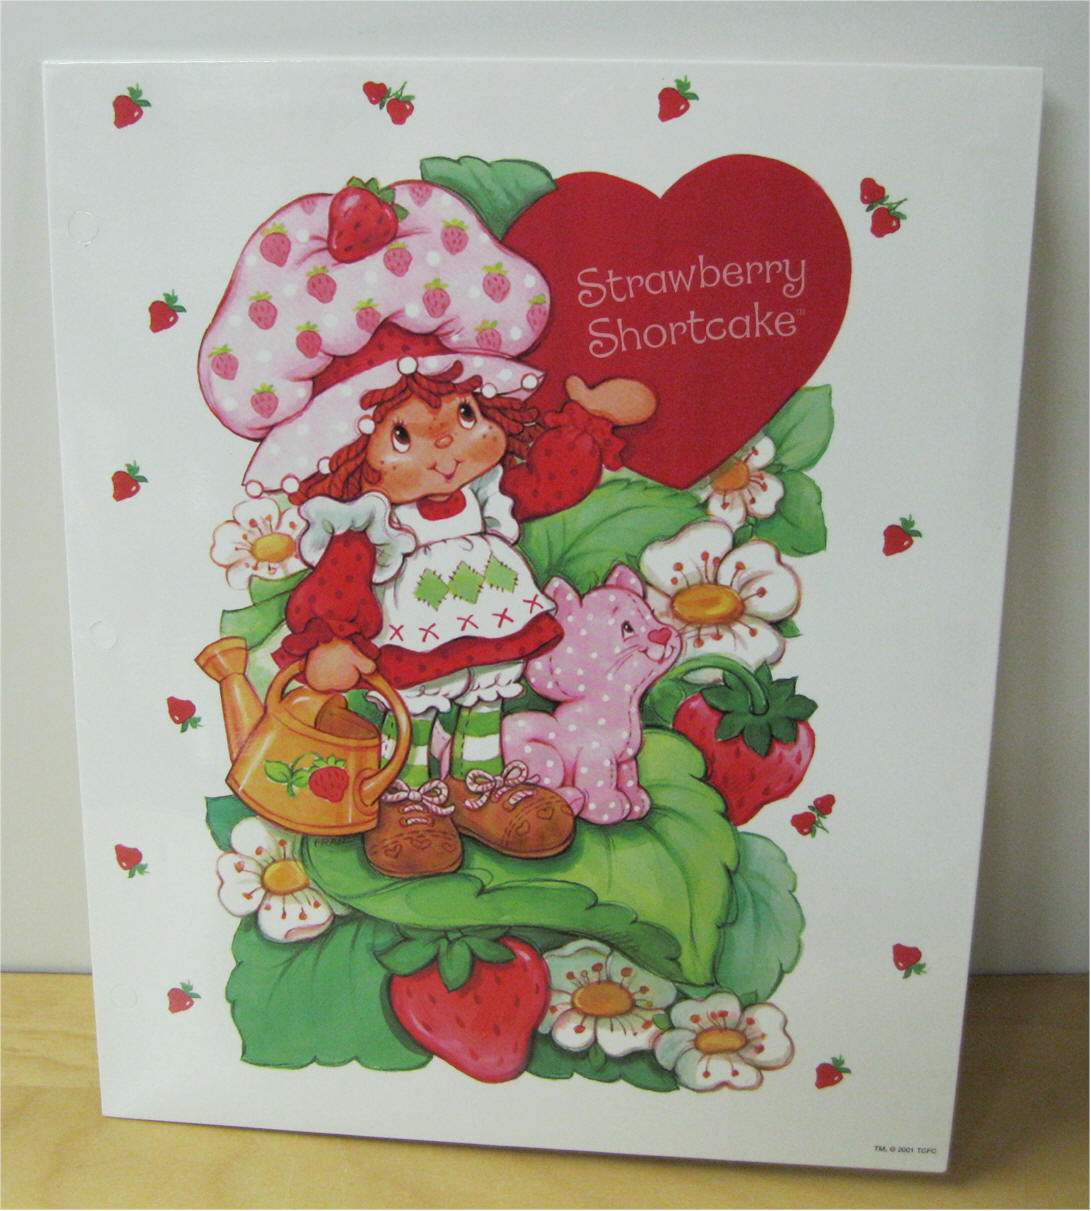 Vintage Strawberry Shortcake Characters Strawberry shortcake vintageVintage Strawberry Shortcake Images